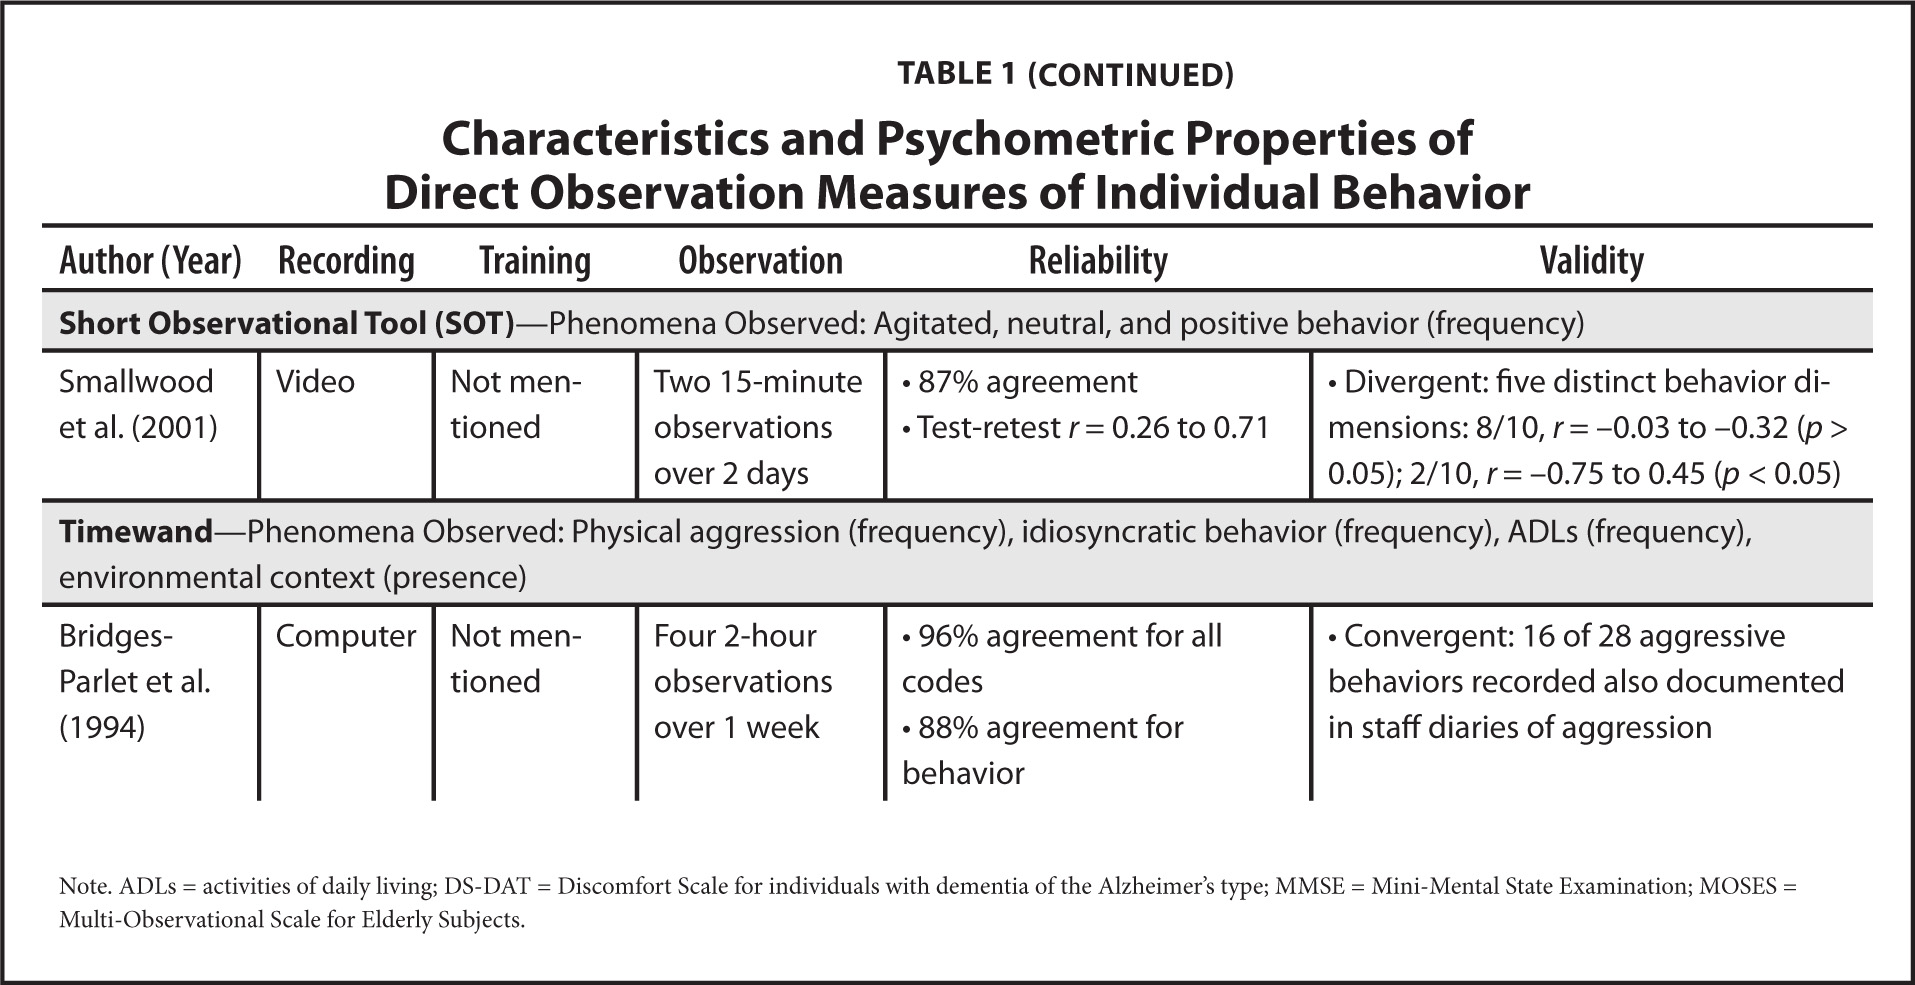 Characteristics and Psychometric Properties of Direct Observation Measures of Individual Behavior